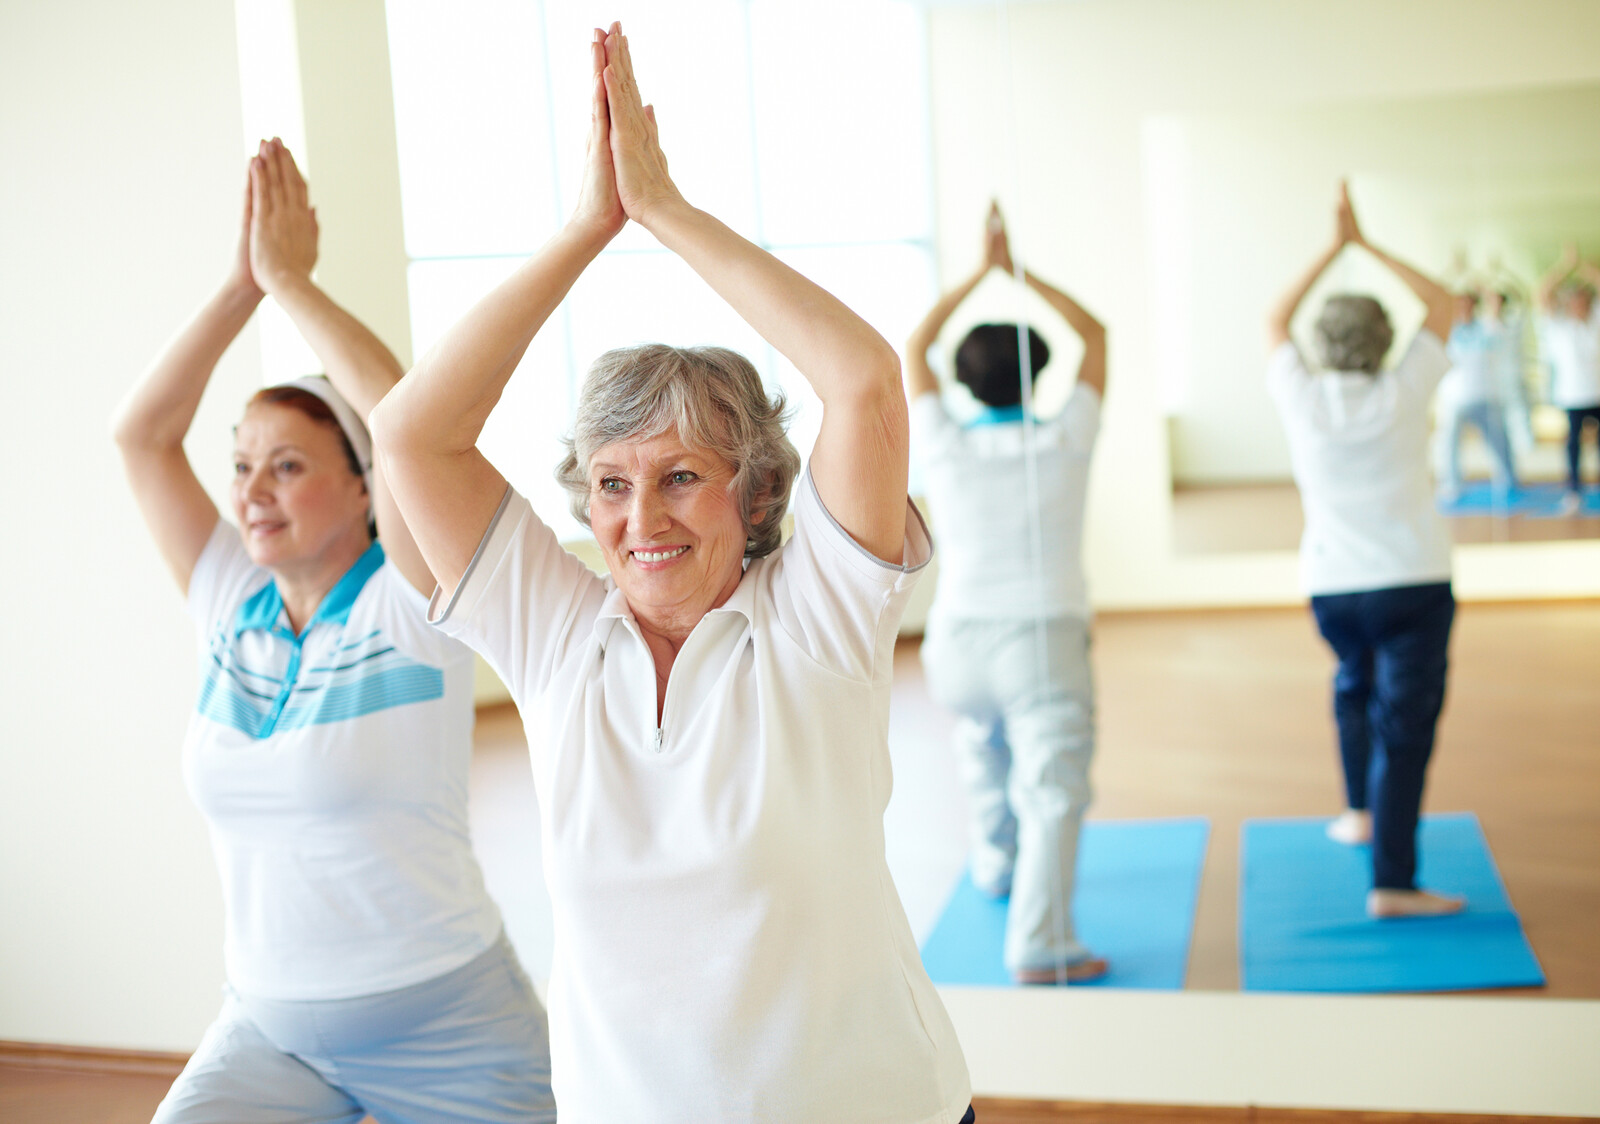 Two senior women in yoga class holding a pose while smiling